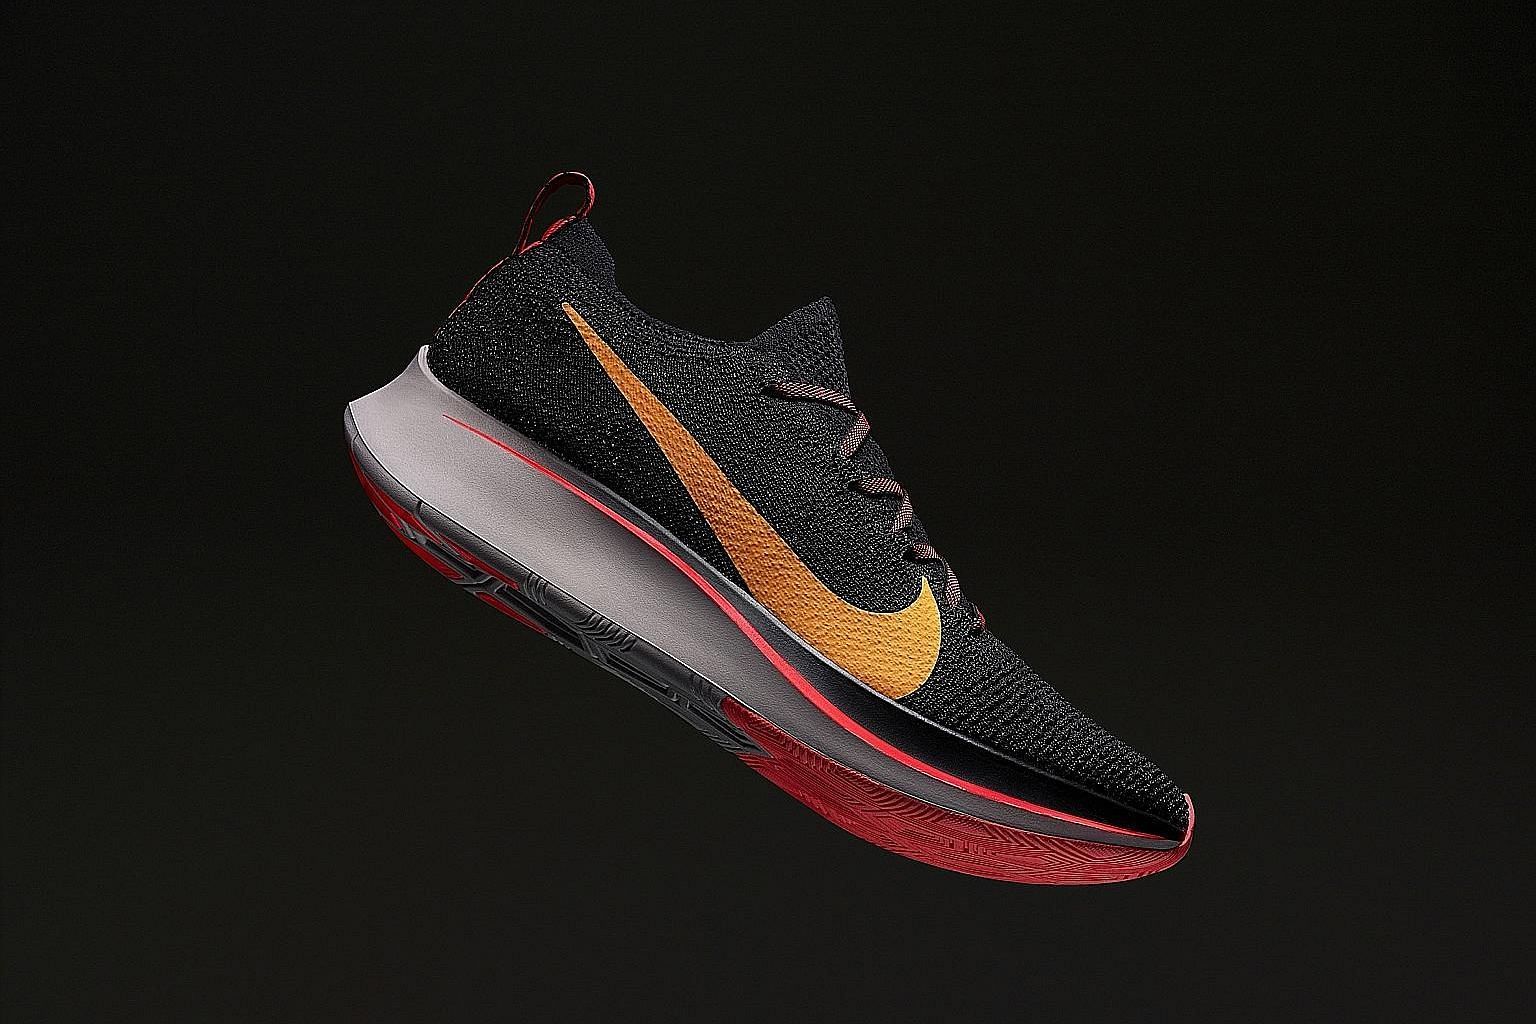 The Nike Zoom Fly Flyknit has a full-length carbon-fibre plate inserted into the midsole to aid foot lift-off.